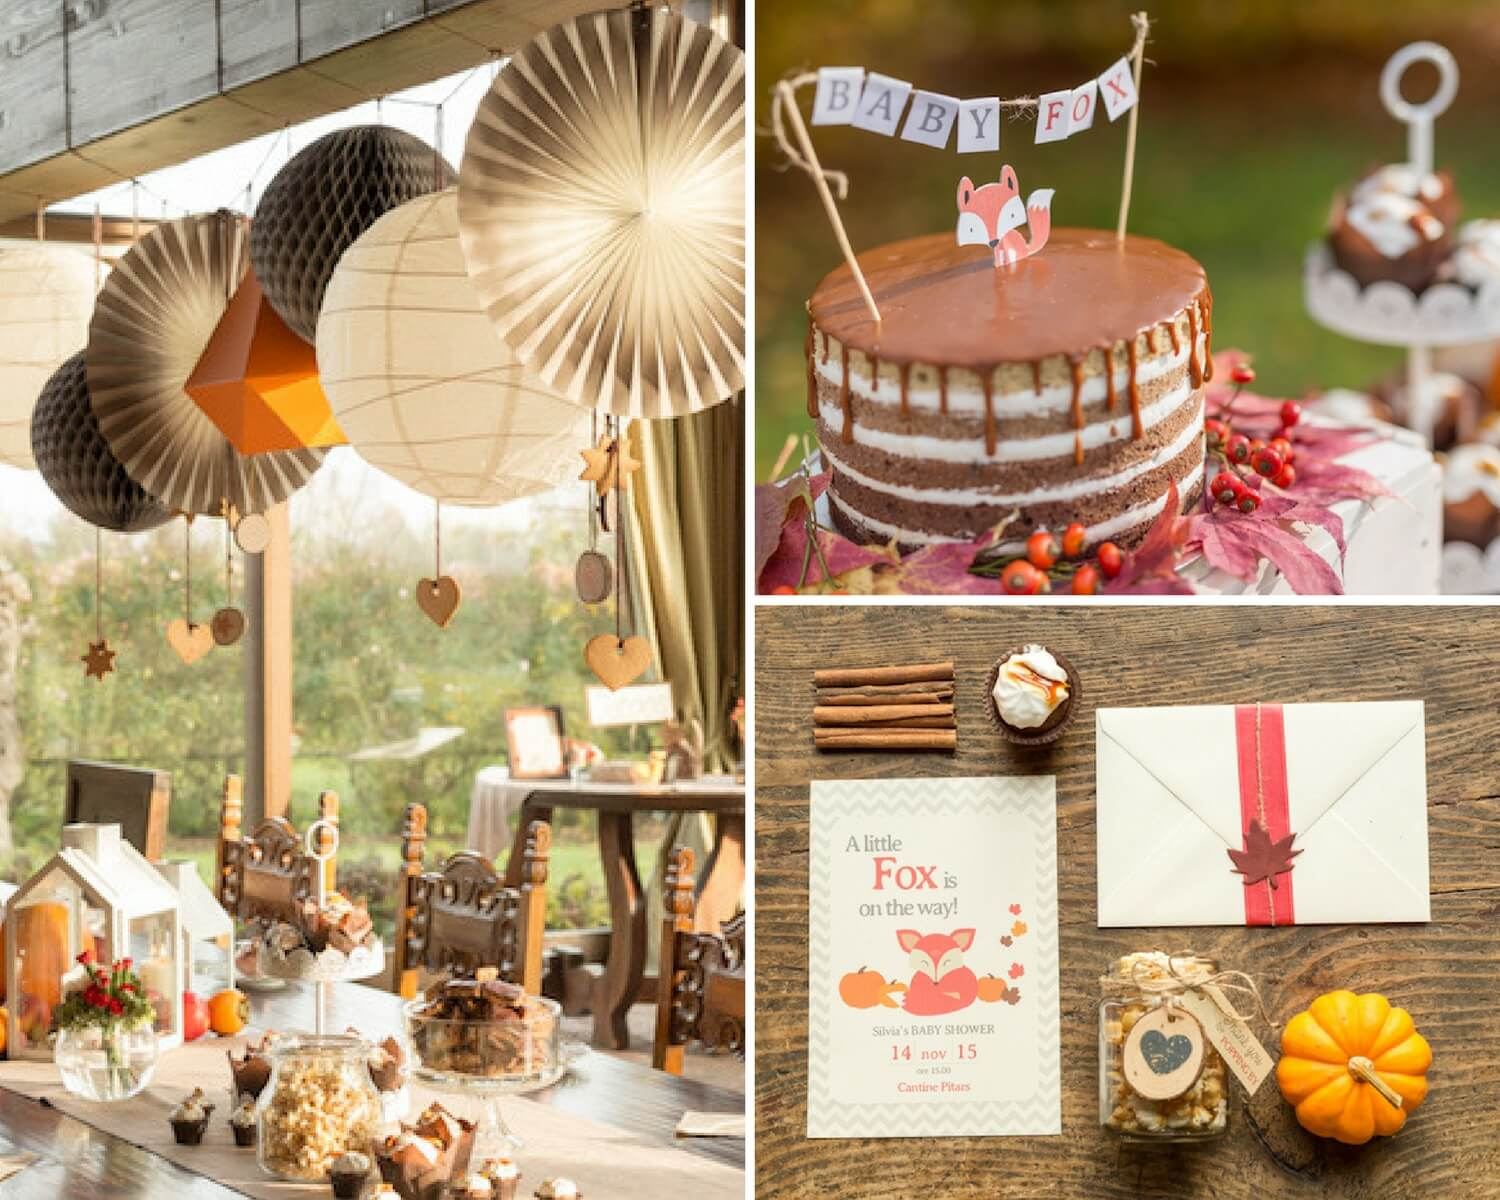 Little fox fall baby shower ideas themes